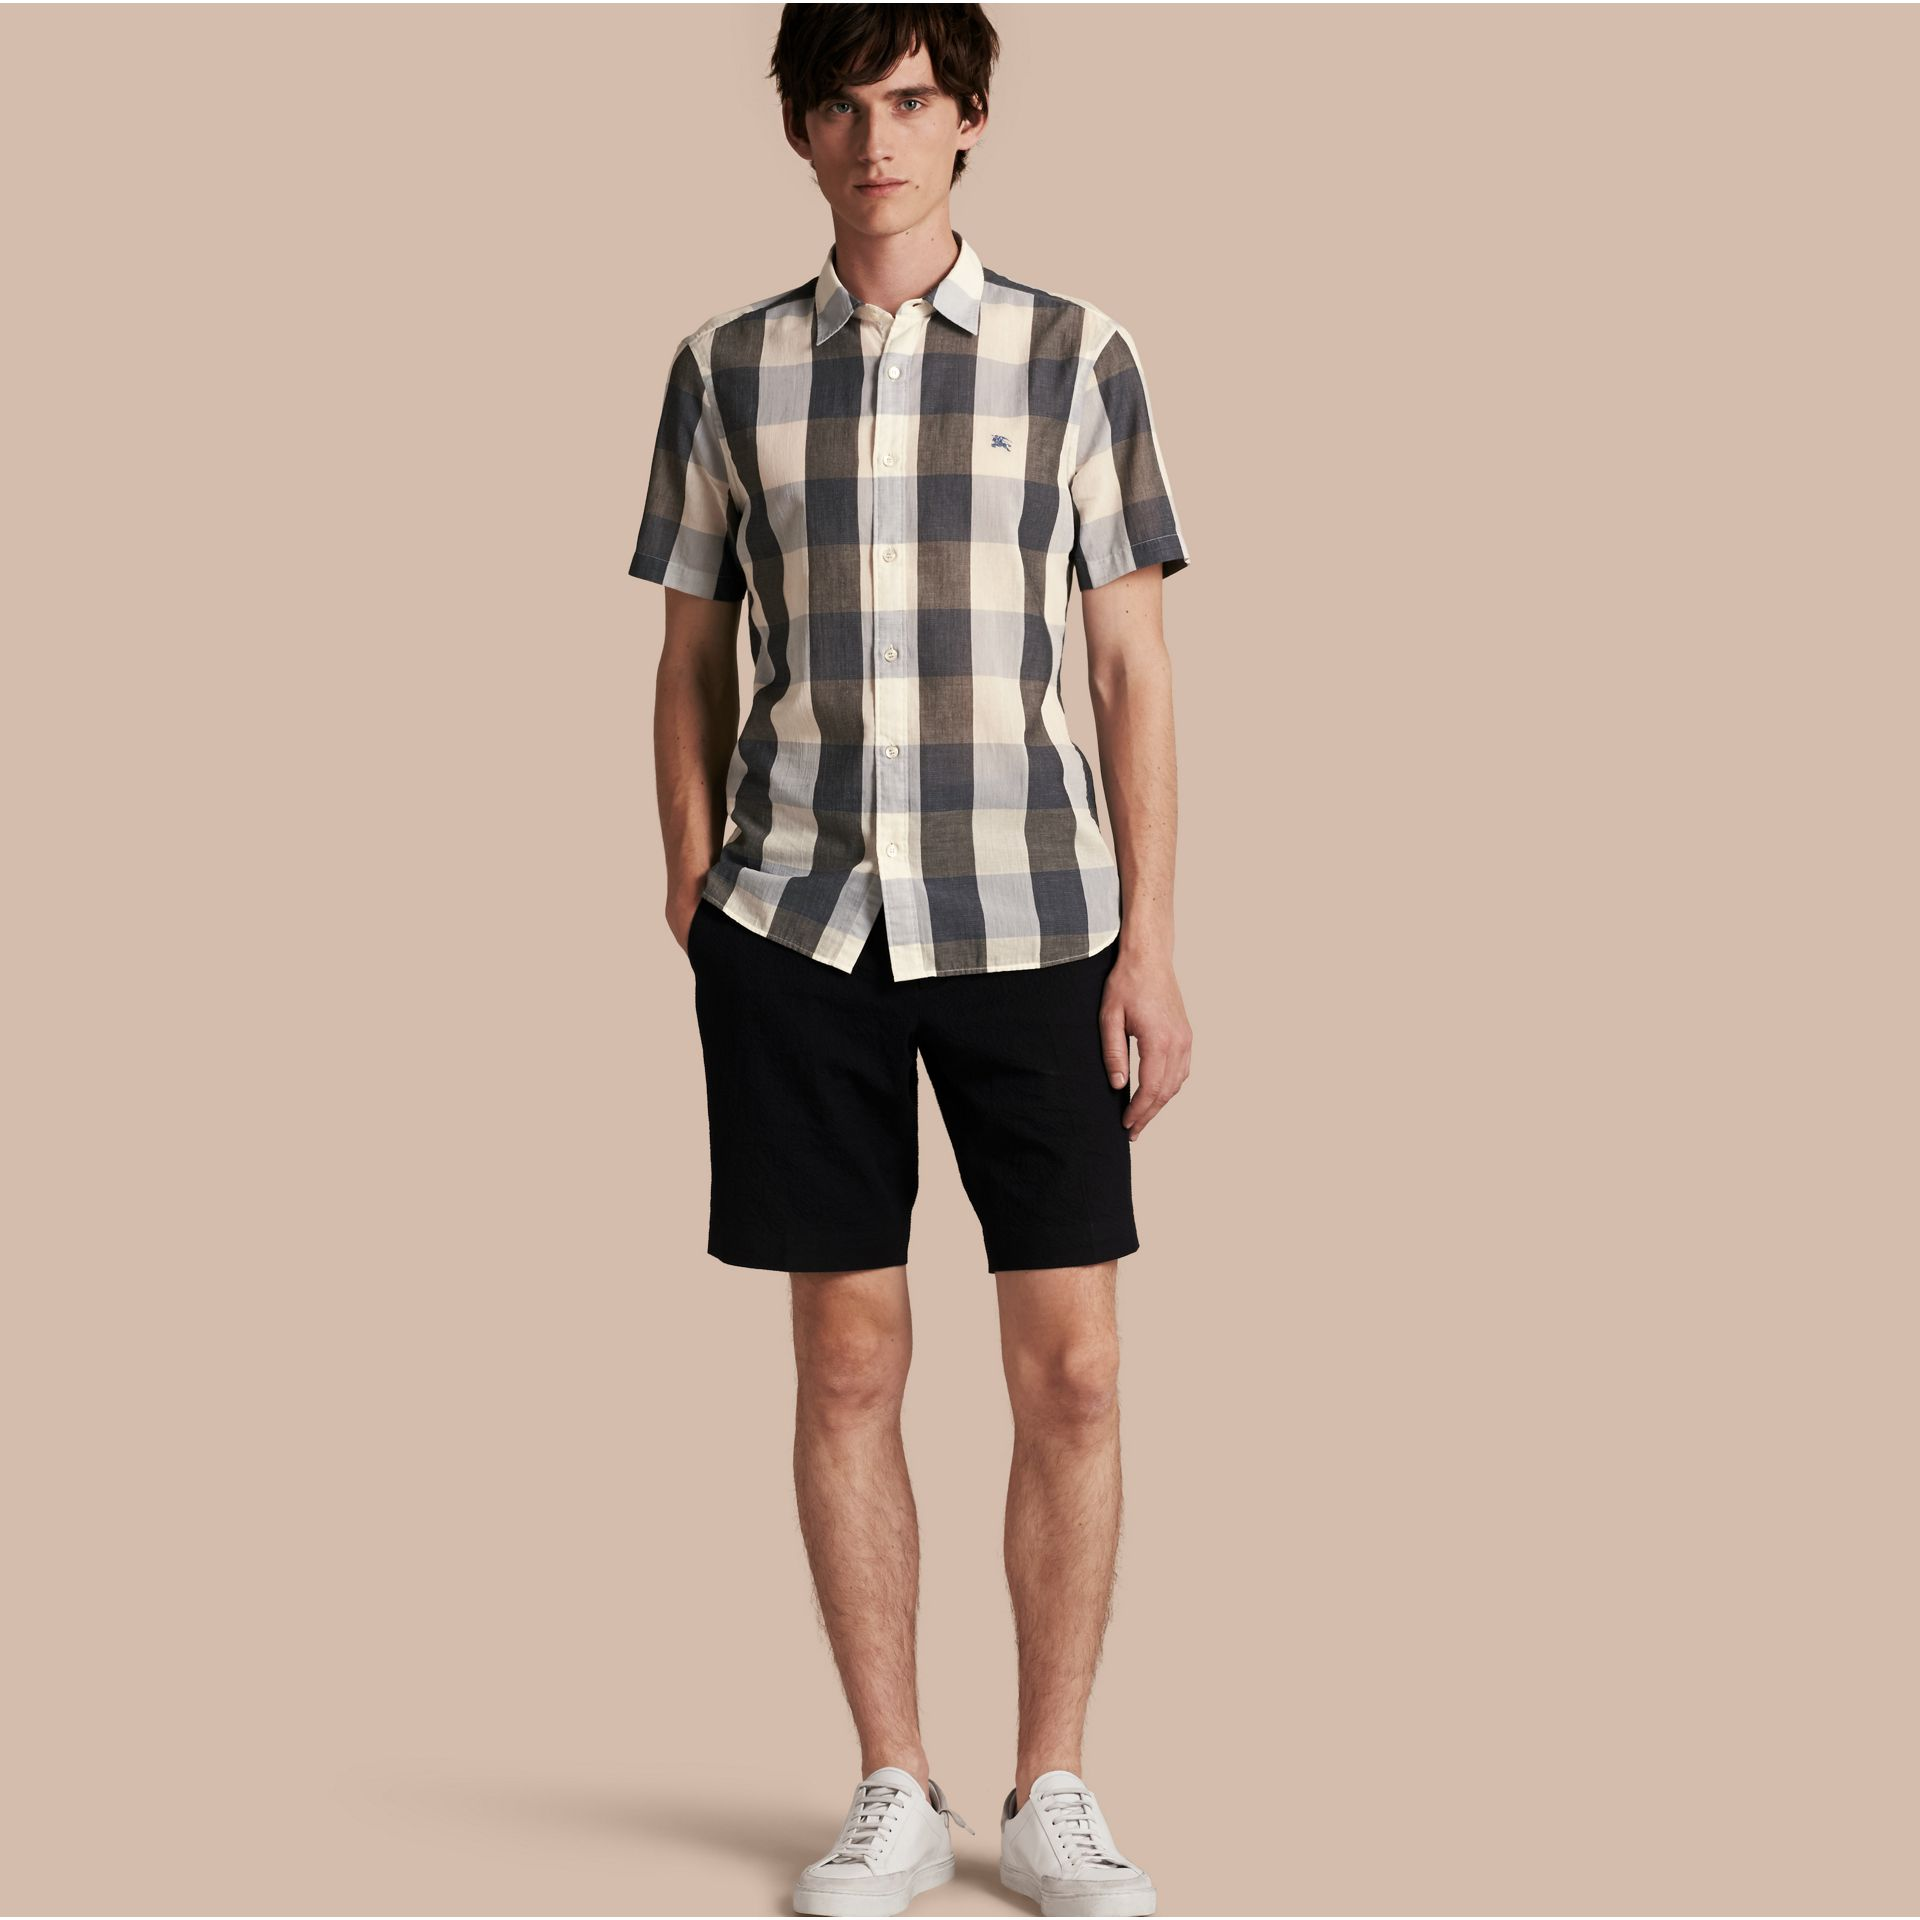 Short-sleeved Exploded Gingham Cotton Linen Shirt Pale Cornflower Blue - gallery image 1